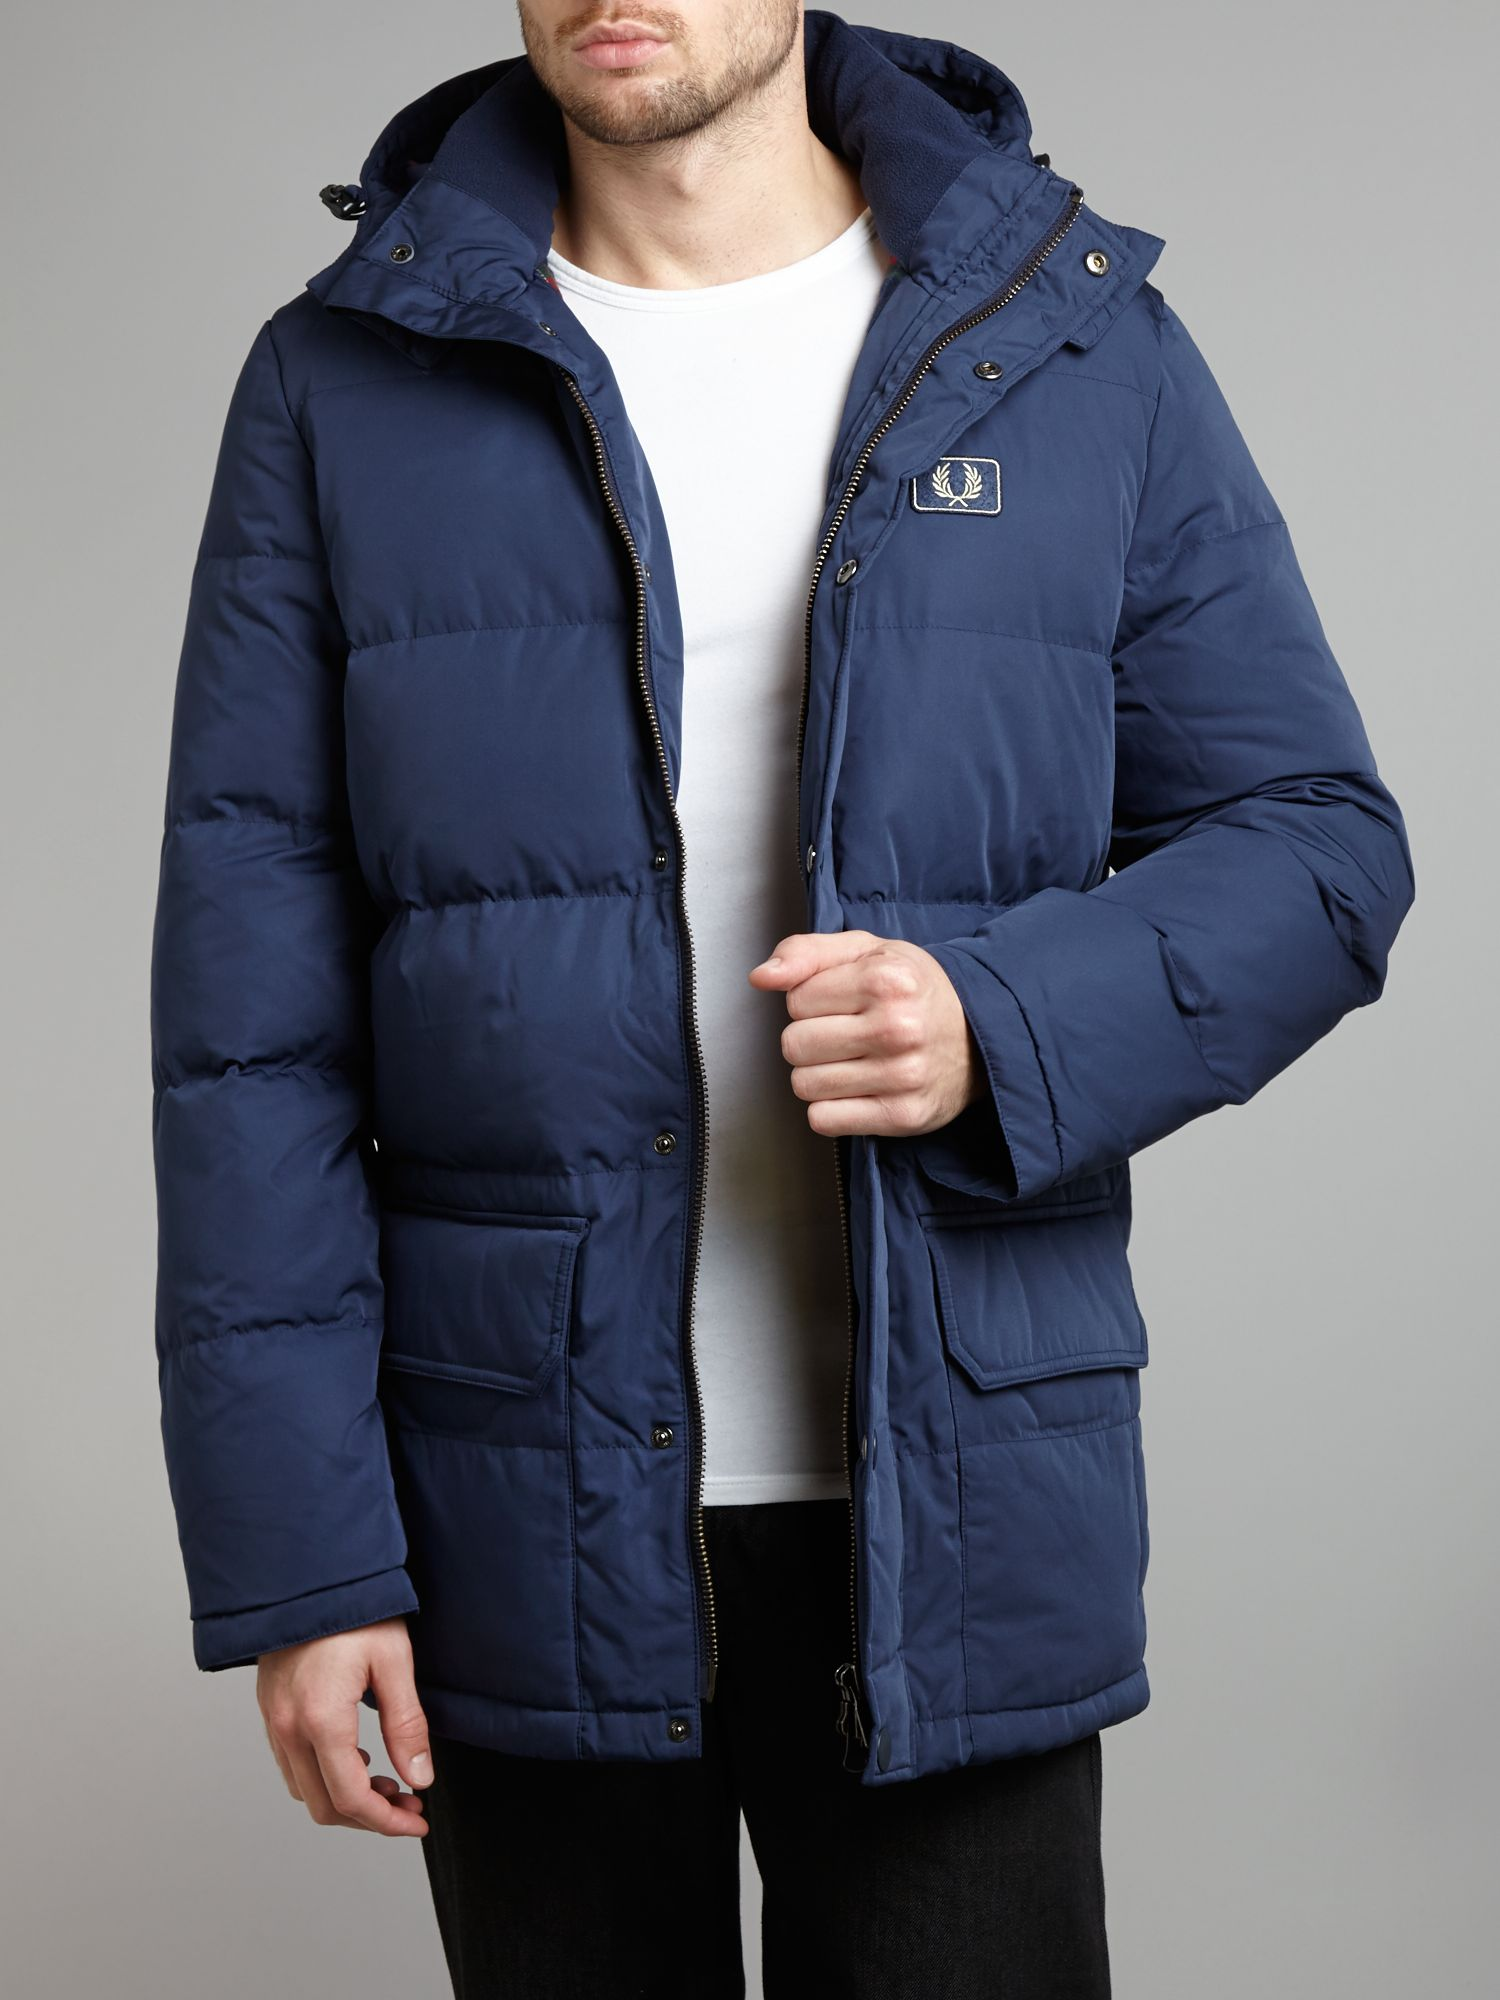 lyst fred perry down arctic hooded jacket in blue for men. Black Bedroom Furniture Sets. Home Design Ideas